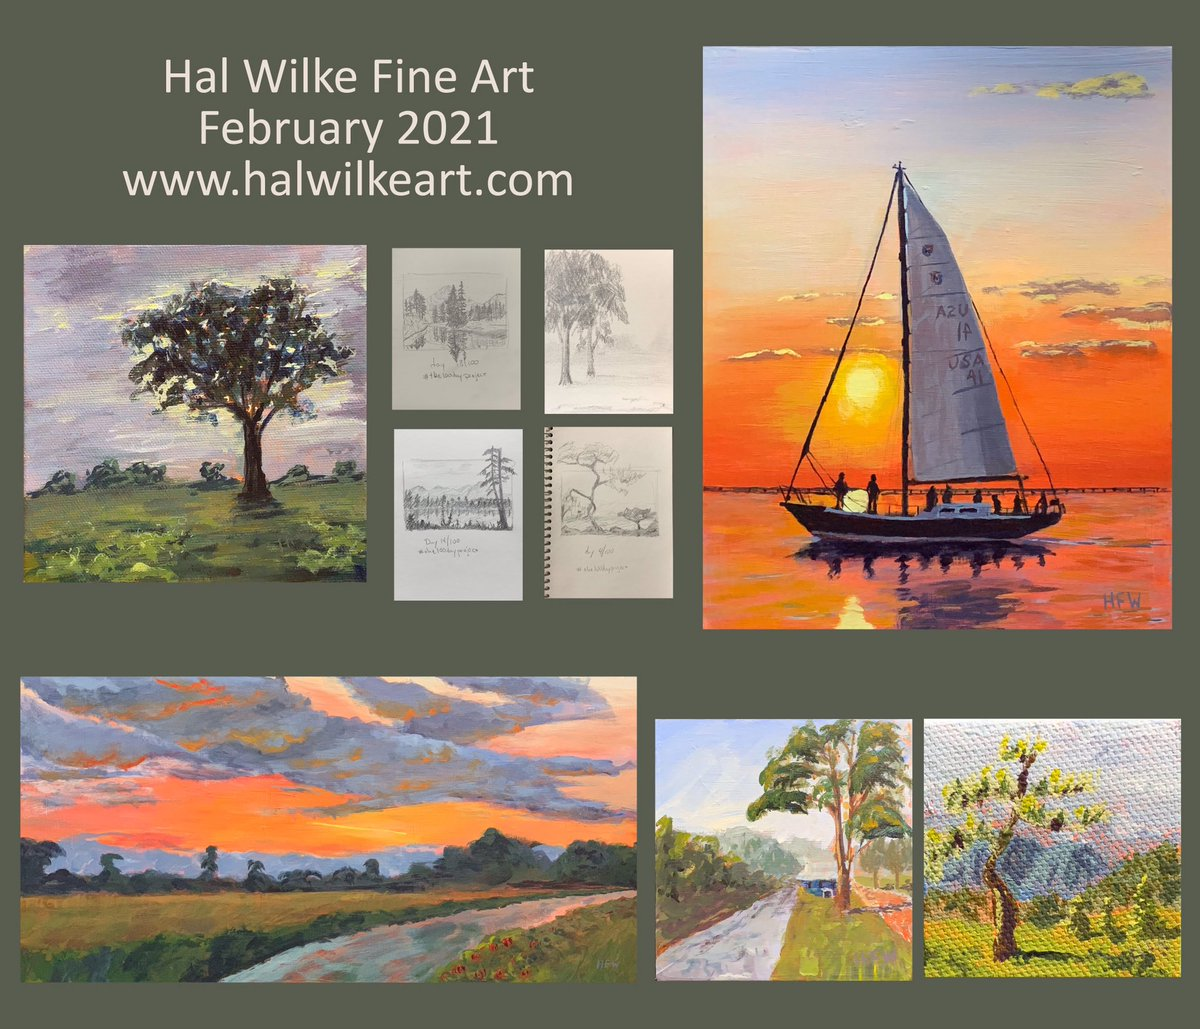 February 2021. The #painting of Grace, the Columbia 50 #sailboat, was a #commission. The 3 little squares and the pencil #drawings are from my #100dayproject  #art #fineart #landscape #nature #hfw100days2021 #sunset #seascape #artforsale #artcollector #creativelife #creative